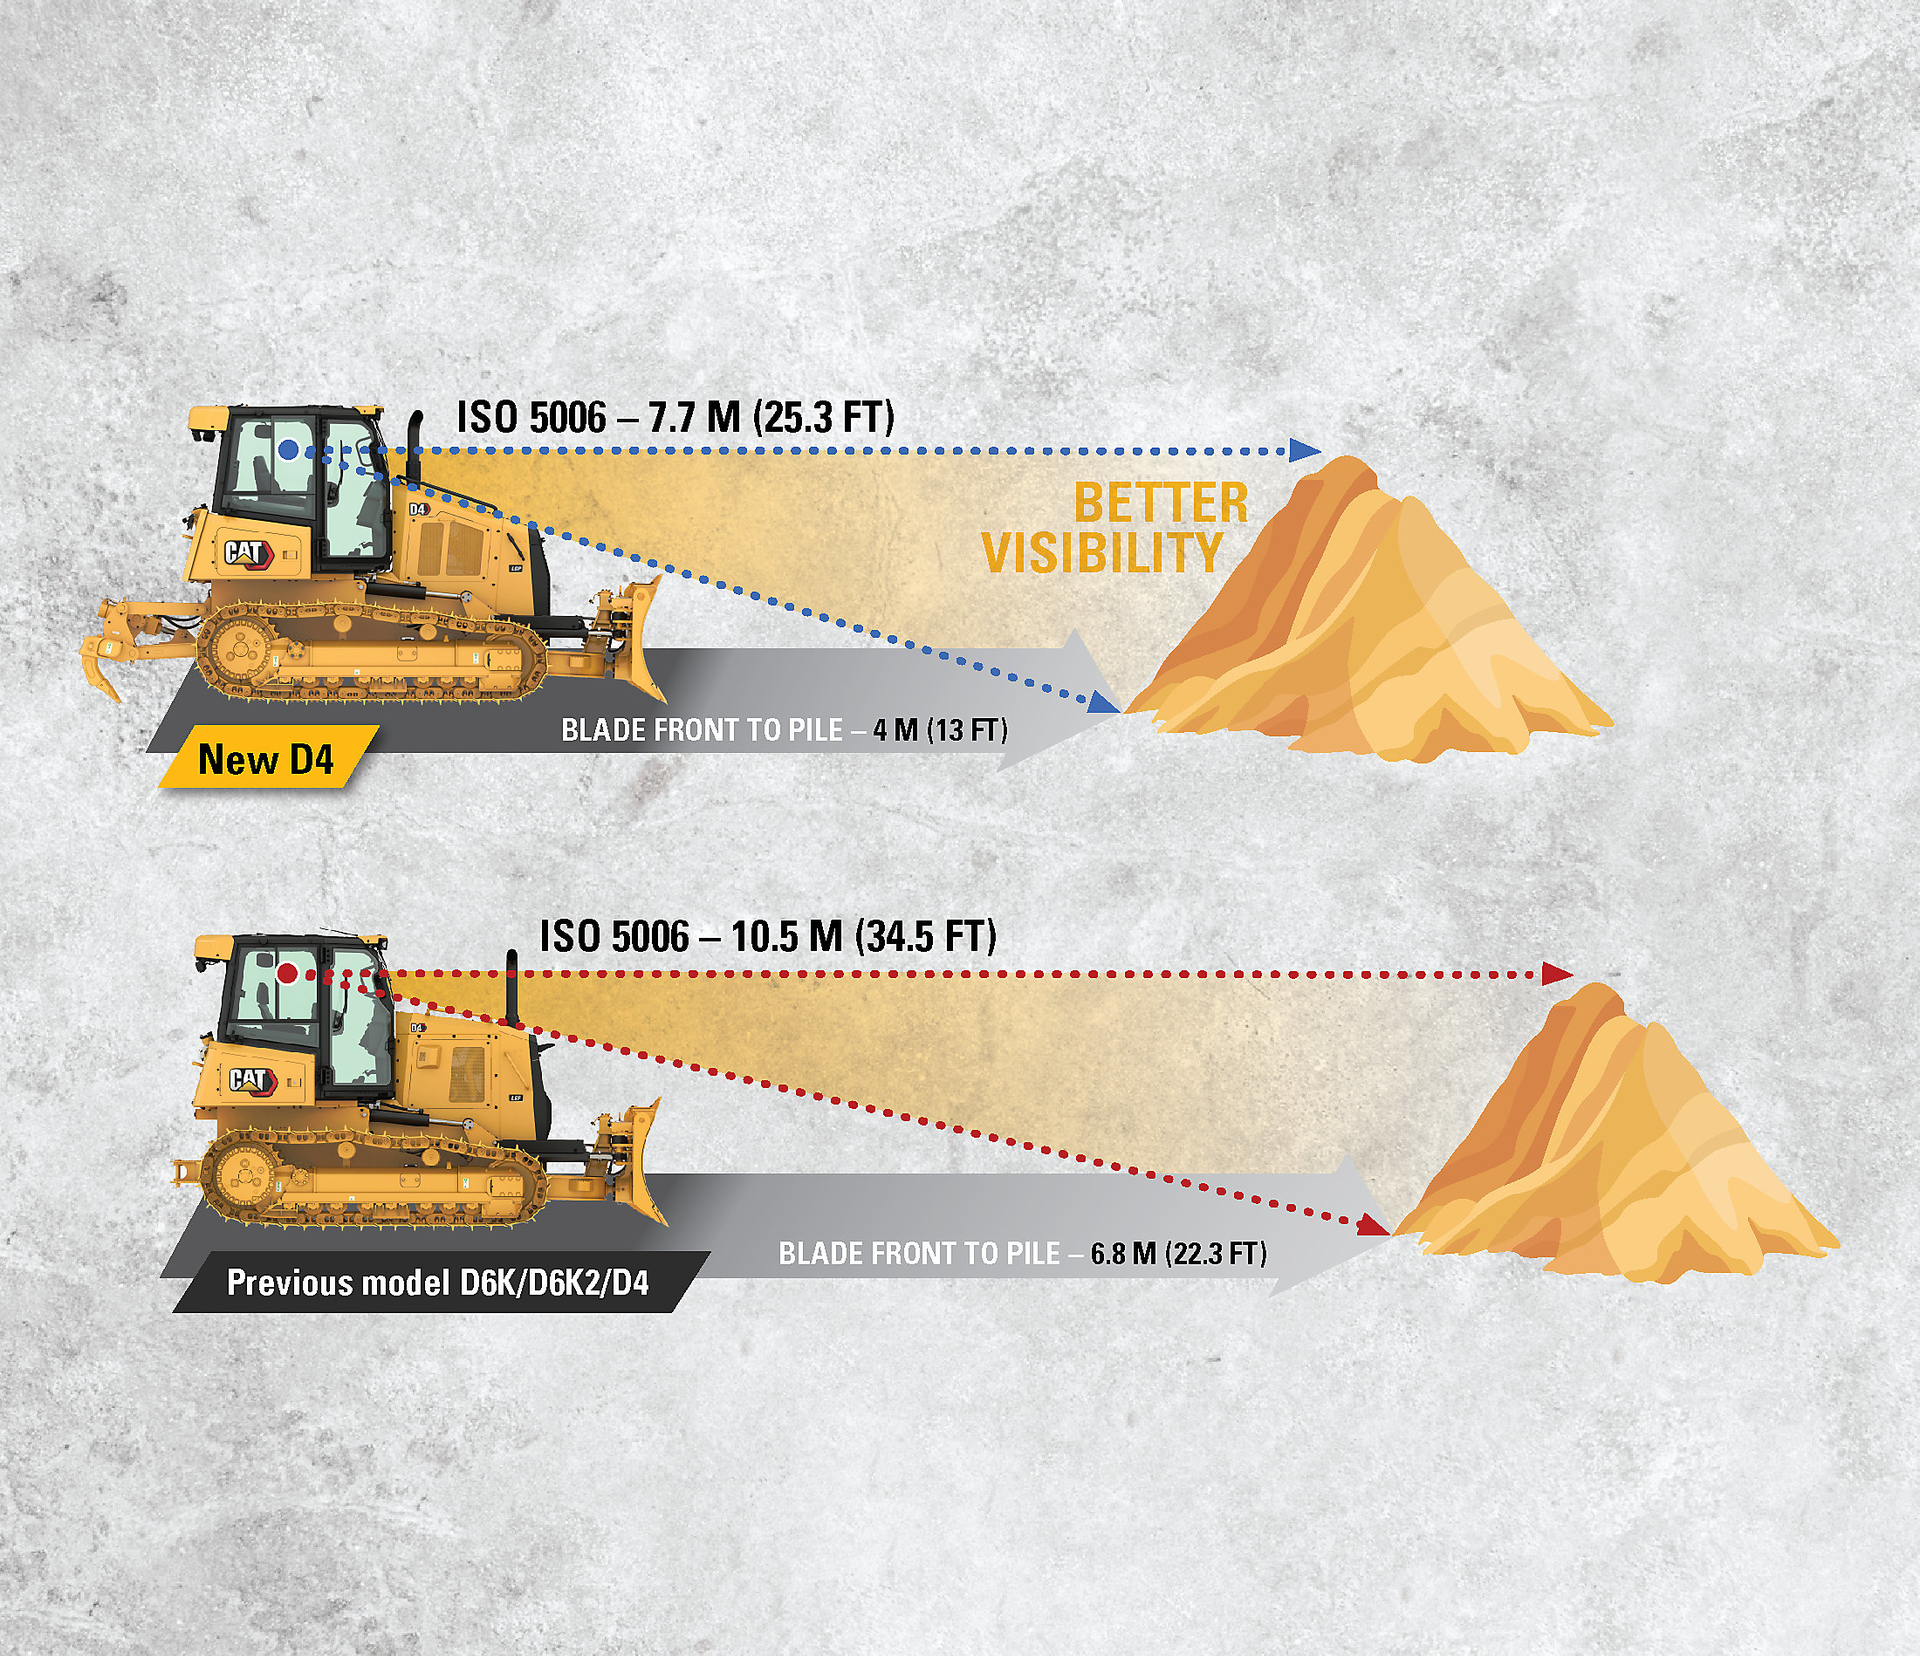 new cat d4 with better visibility